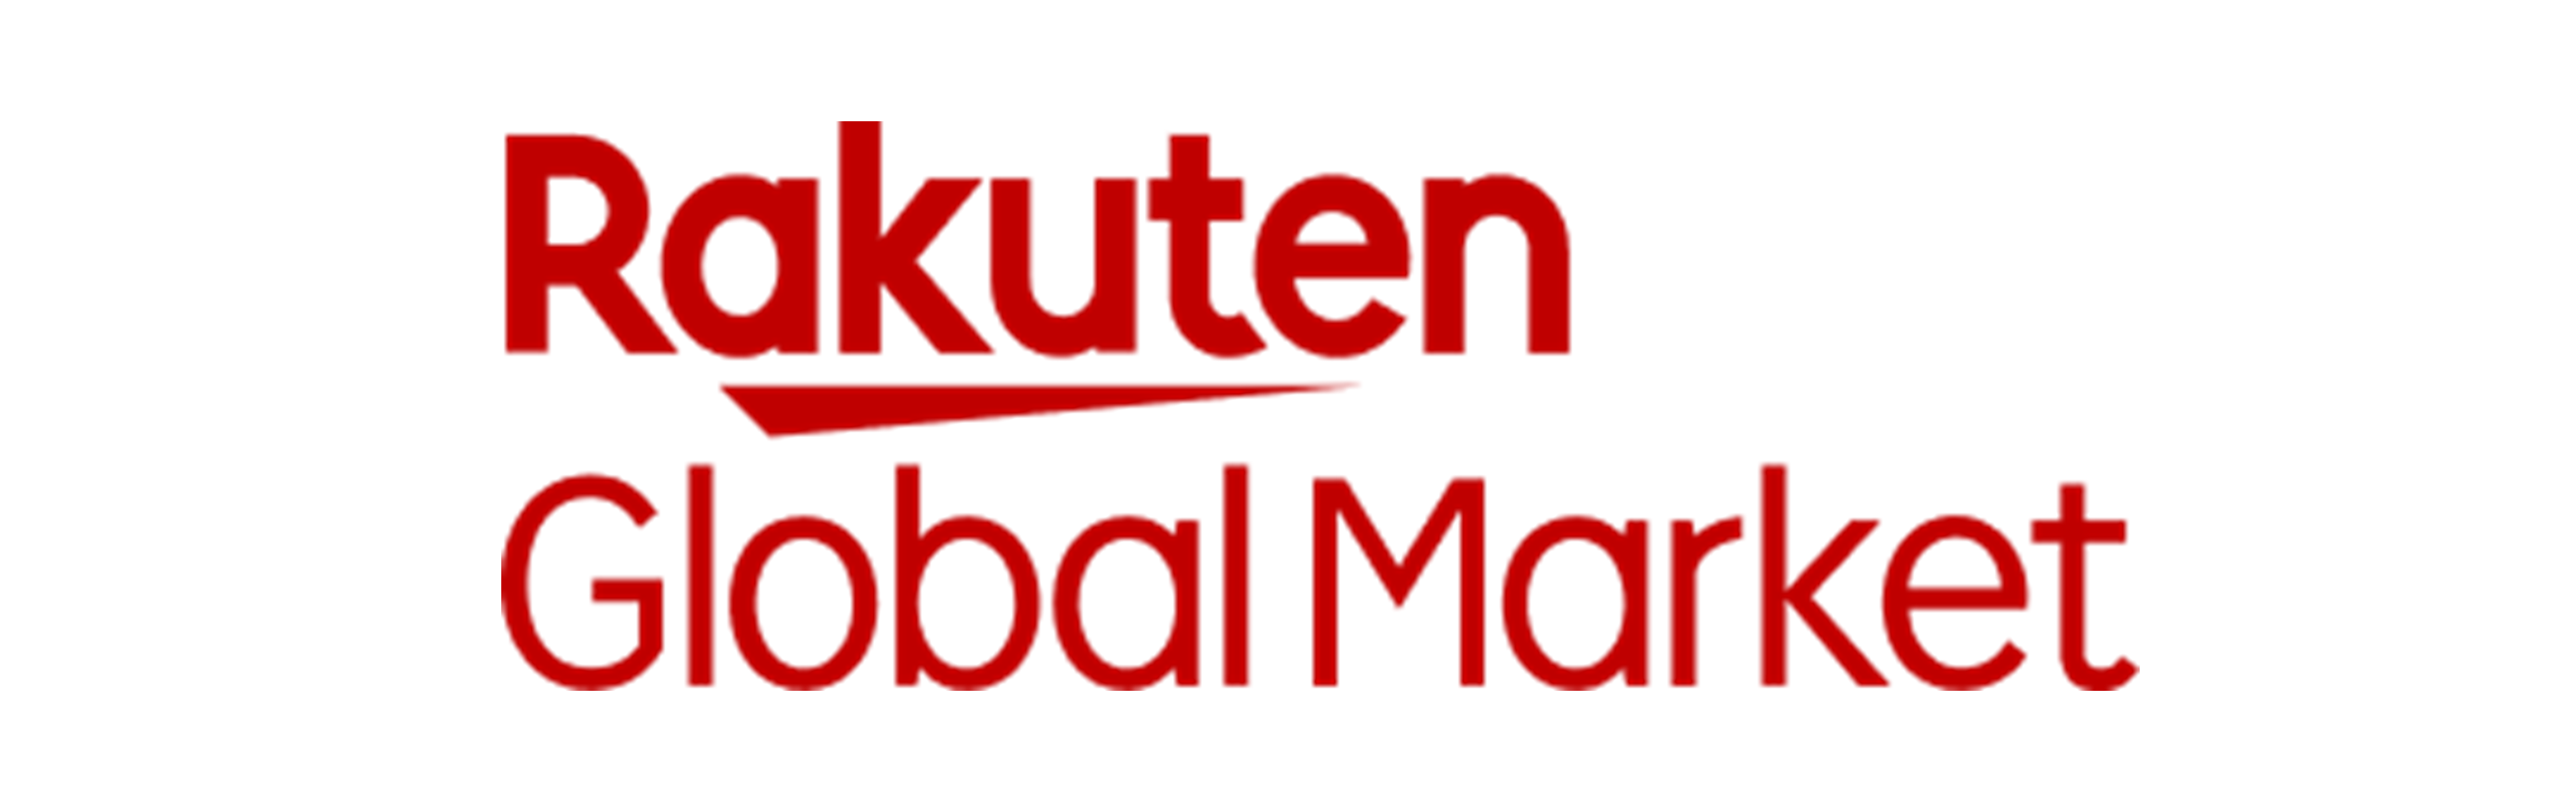 How to Buy Goods from Japan on Rakuten Global Market Overseas?